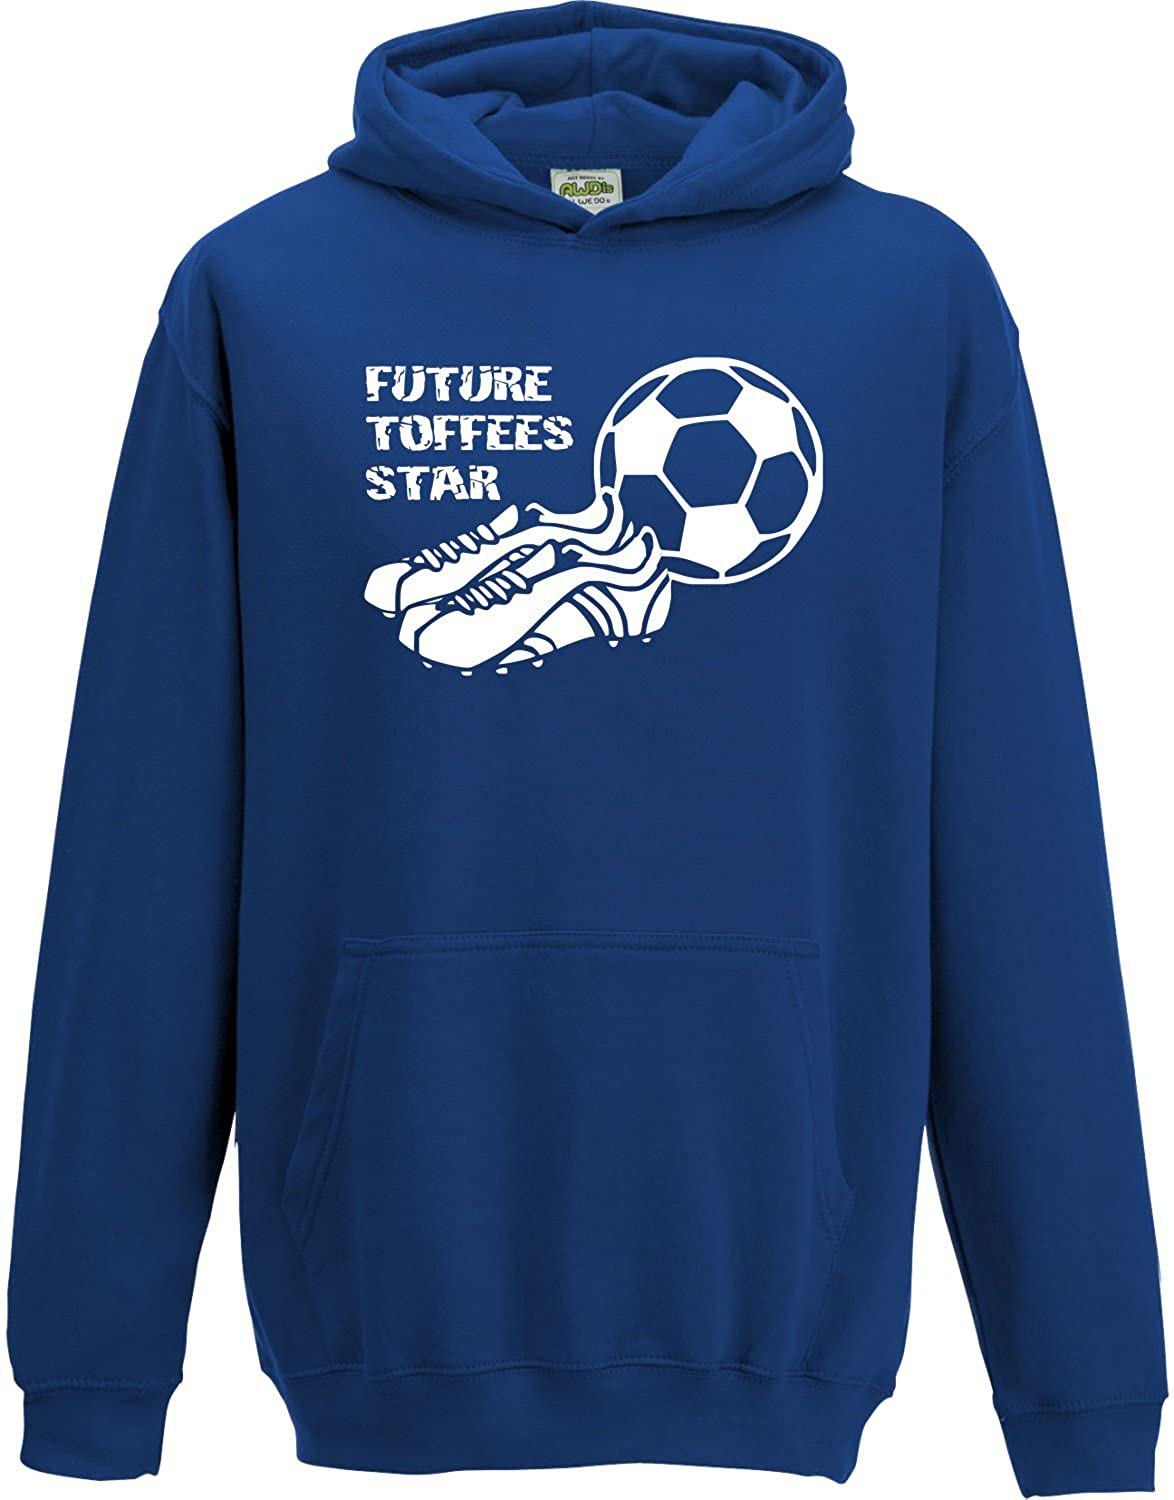 Hat-Trick Designs Everton Football Baby/Kids/Childrens Hoodie Sweatshirt-Royal Blue-Future Star-Unisex Gift